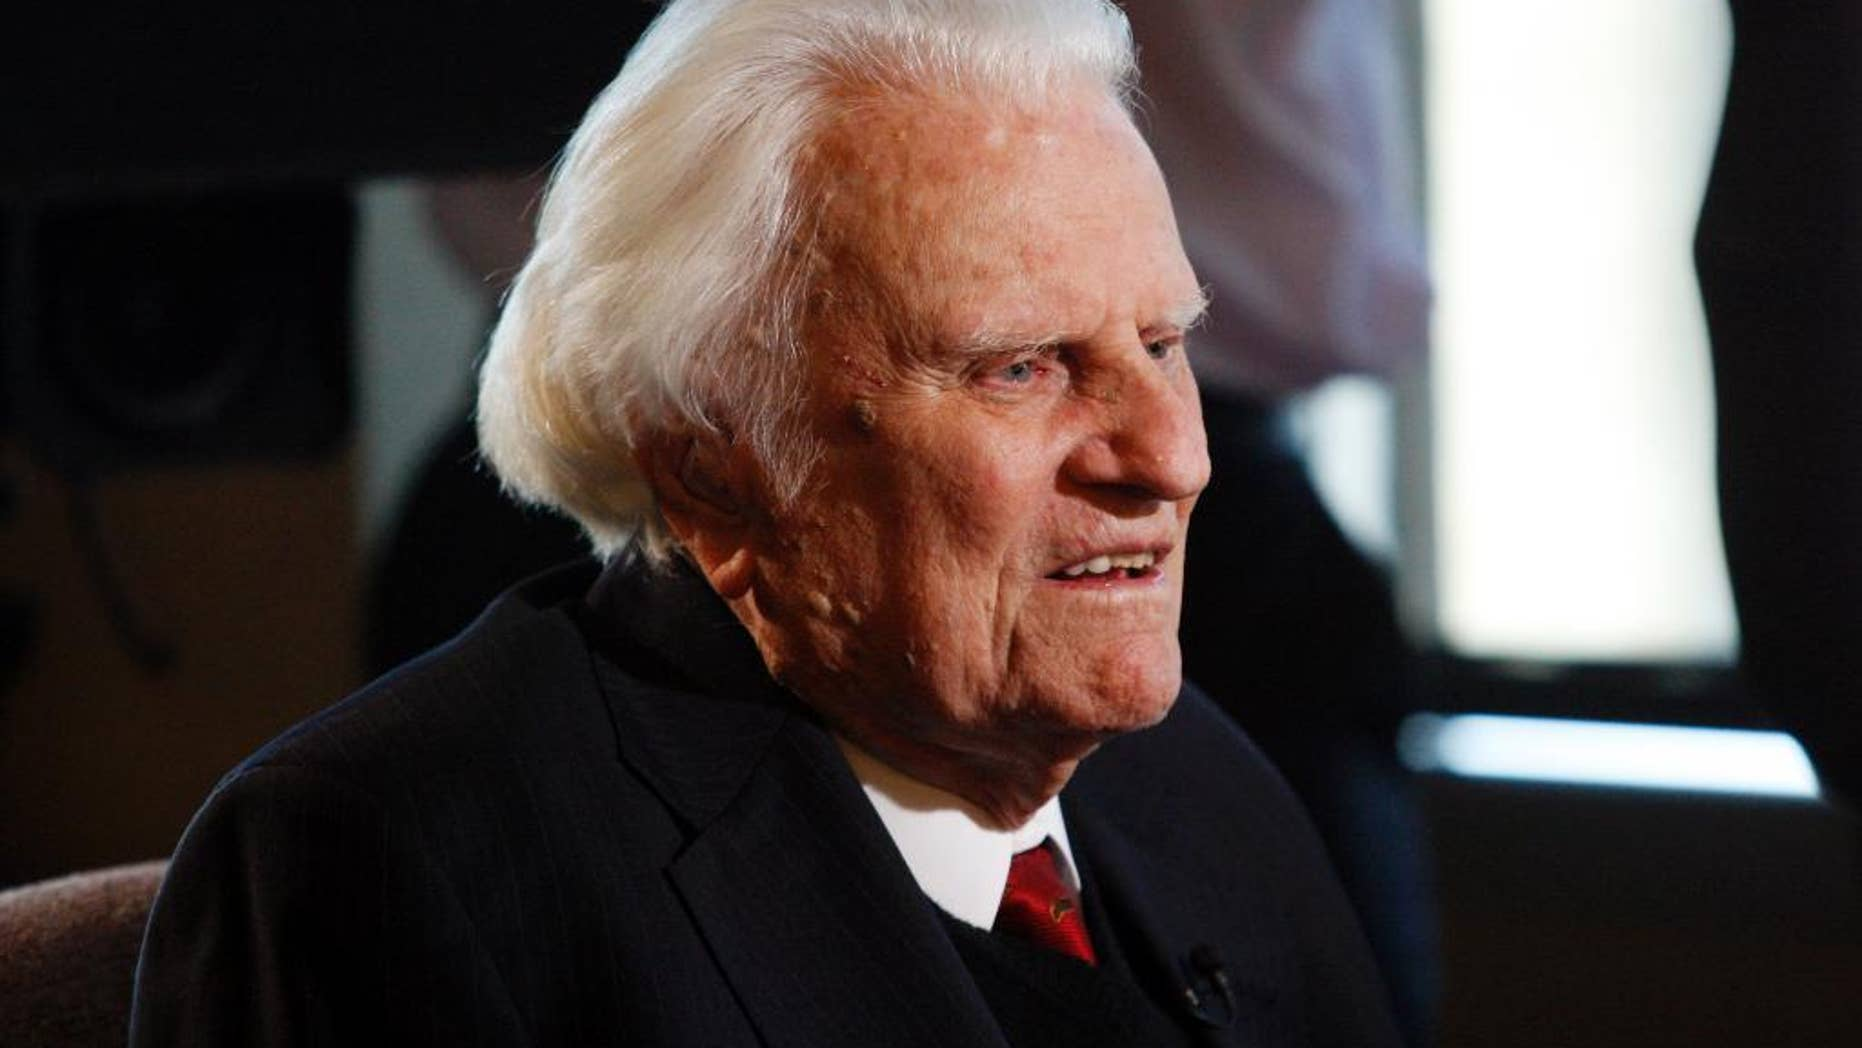 FILE - In this Dec. 20, 2010, file photo, Rev. Billy Graham is interviewed at the Billy Graham Evangelistic Association headquarters in Charlotte, N.C. Graham plans to celebrate his 96th birthday, on Friday, Nov. 7, 2014, with family and friends. Last year, 900 people attended a two-hour party for Graham at an Asheville hotel. His son, the Rev. Franklin Graham, said Wednesday that his father is in good spirits, he's eating well, and his mind is still sharp. (AP Photo/Nell Redmond, File)